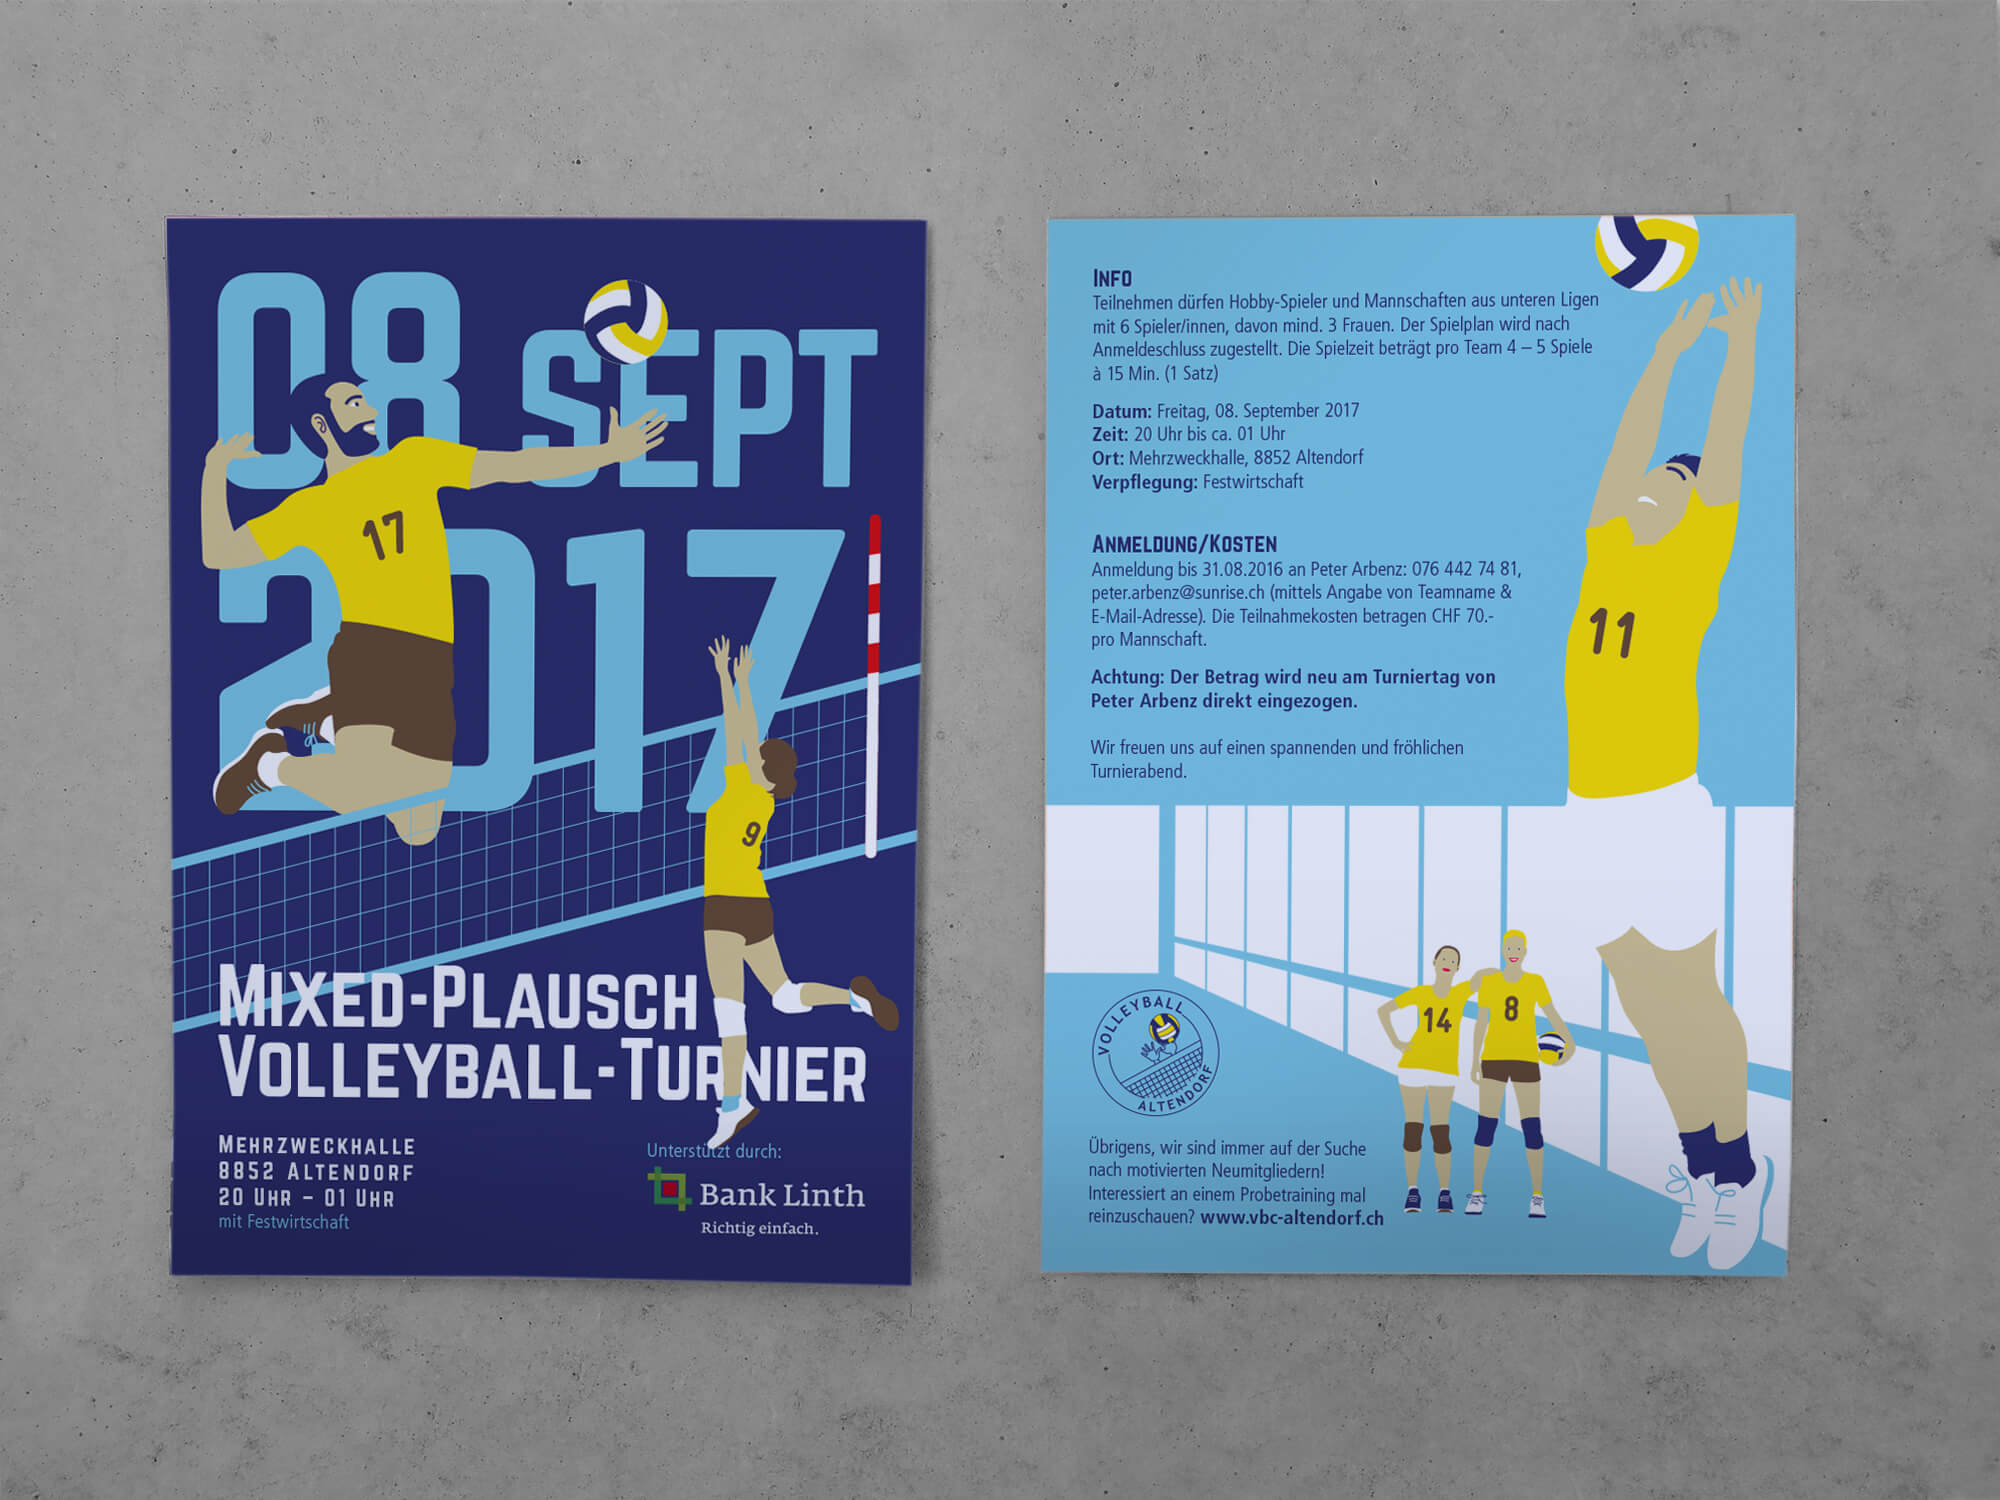 Volleyball_Altendorf_Flyer_Kim-Arbenz